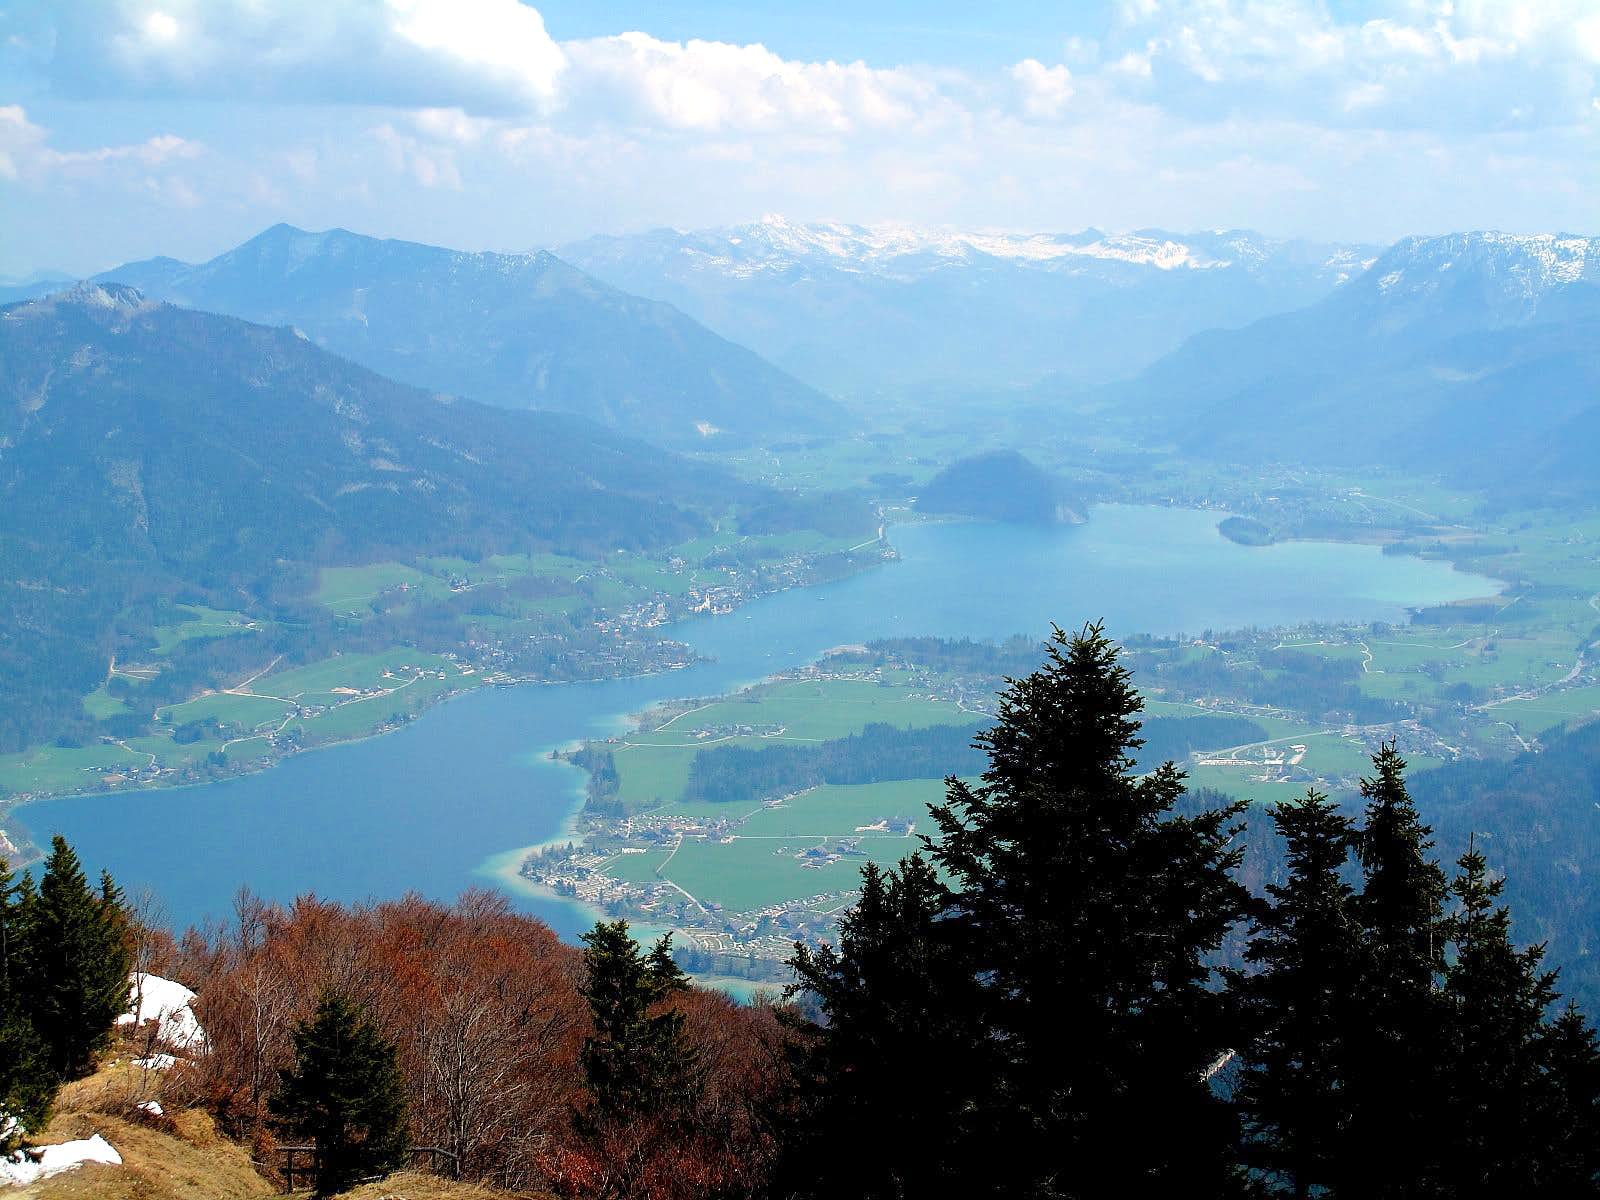 Images of the Wolfgangsee